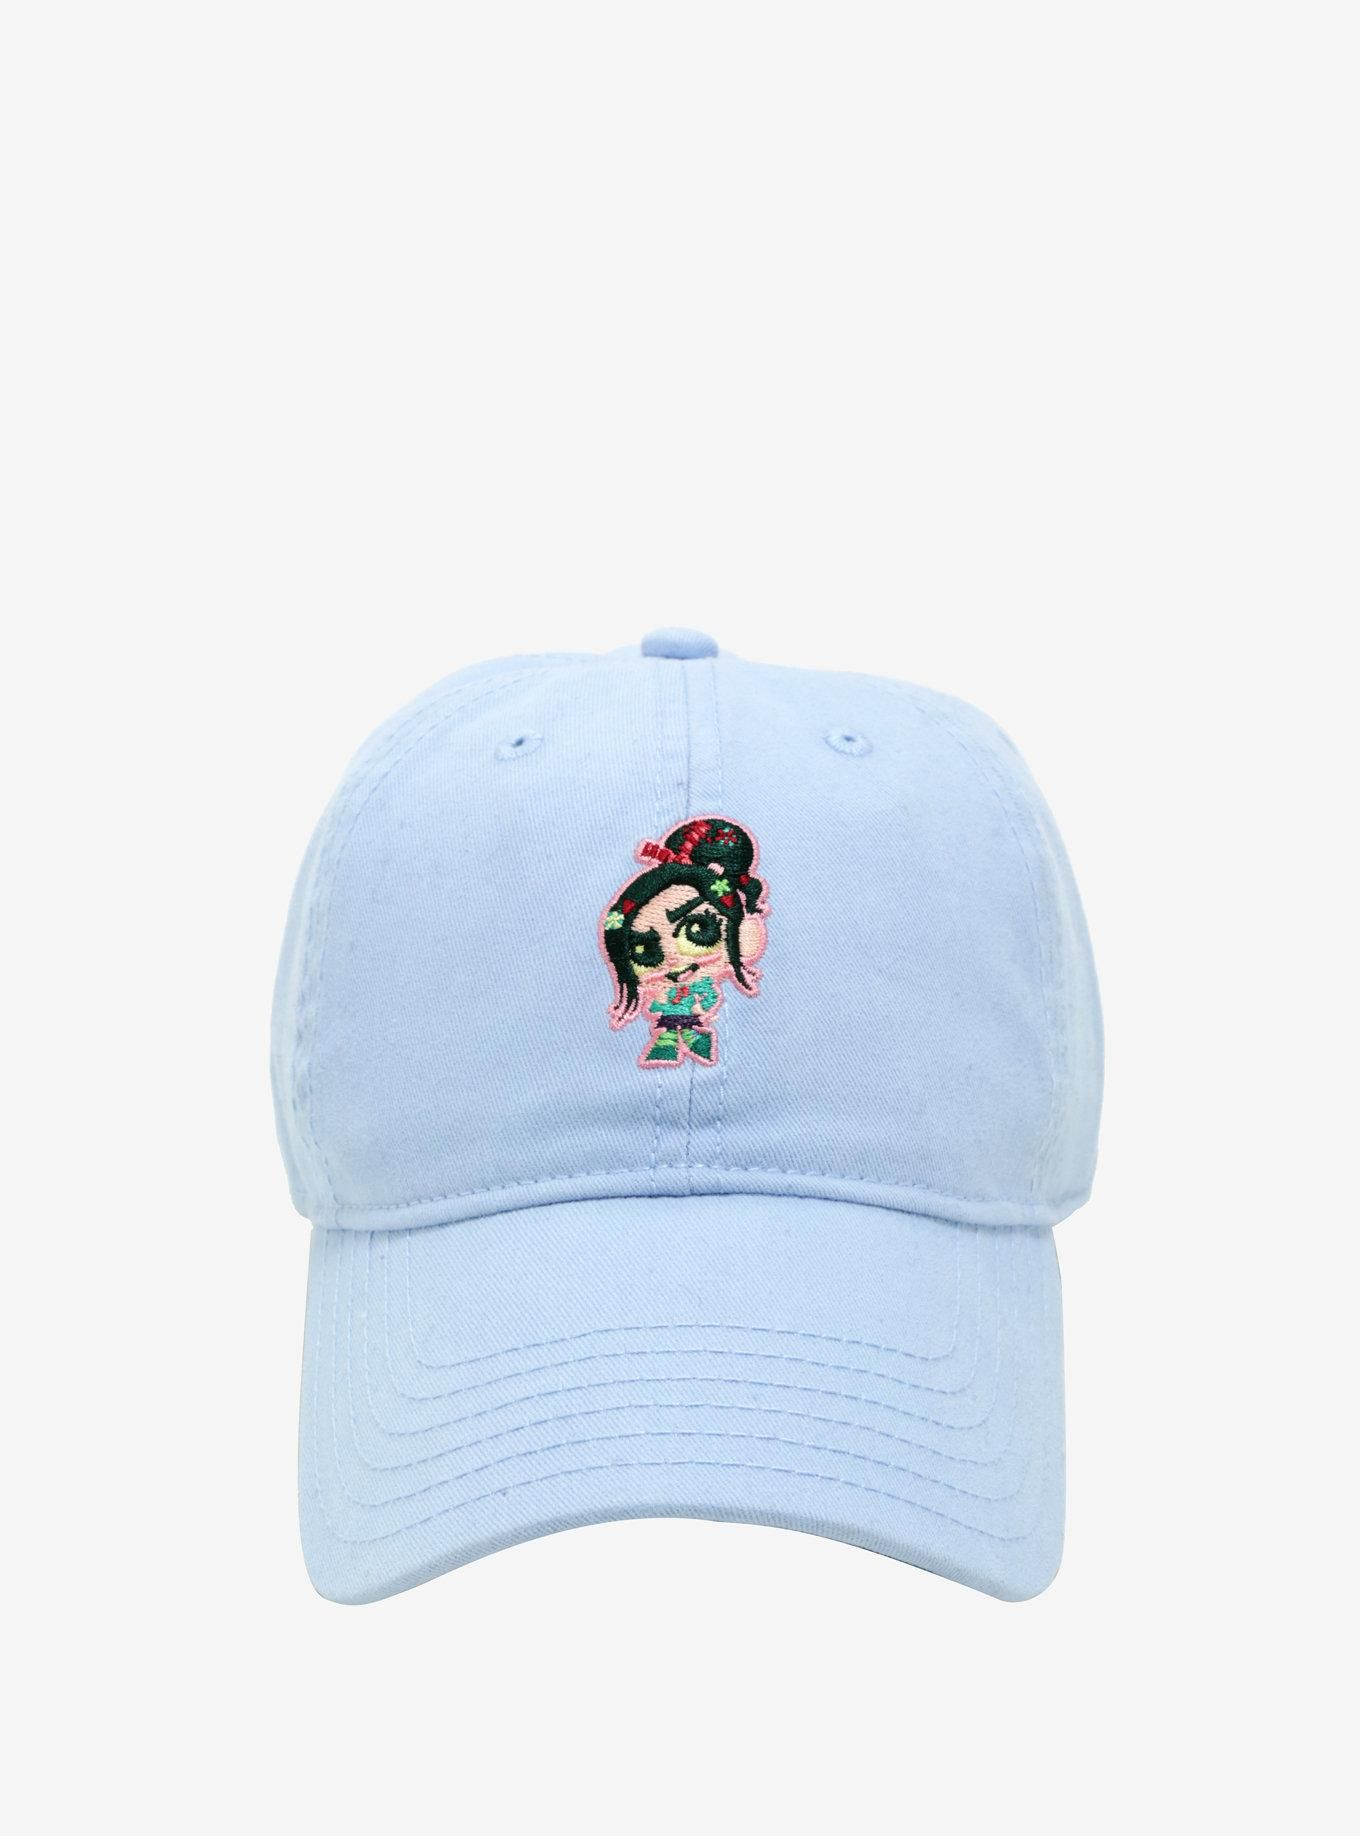 39ef5b57c1c Disney Wreck-It Ralph Vanellope Dad Hat